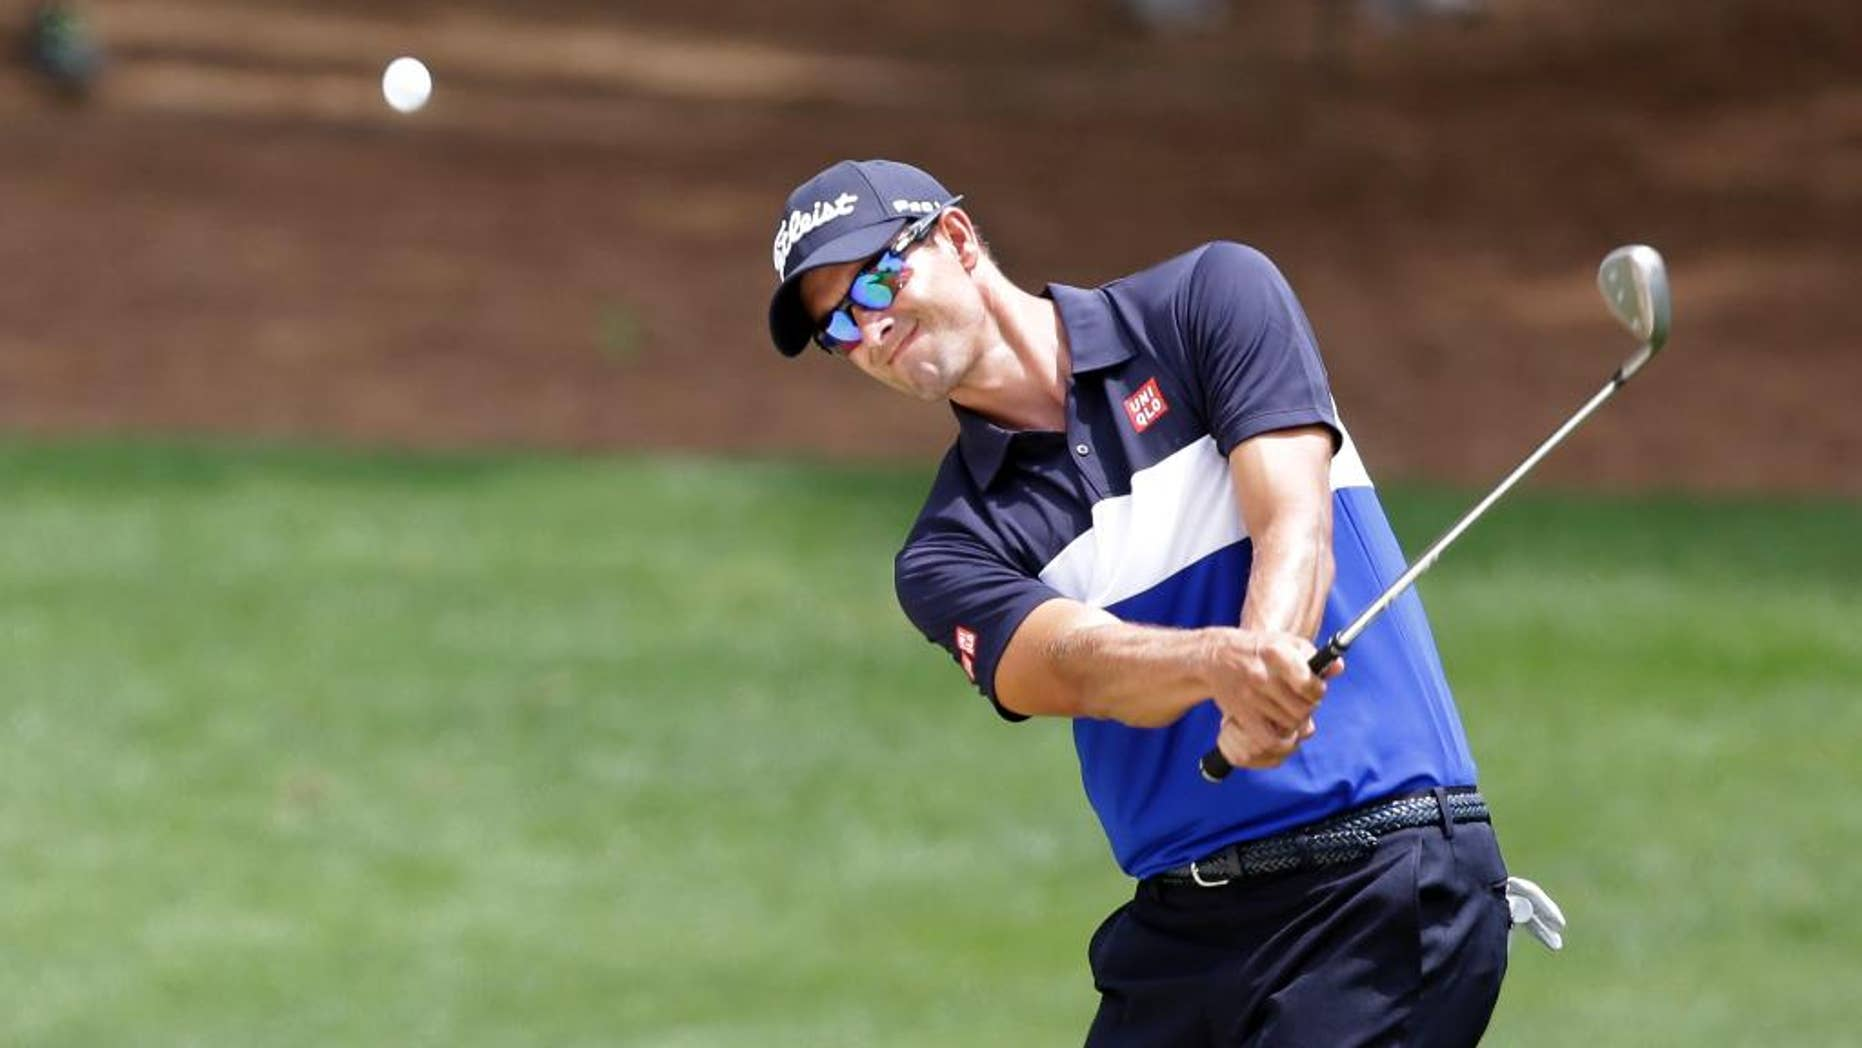 Adam Scott, of Australia, chips to the fourth green during the first round of the Wells Fargo Championship golf tournament at Quail Hollow Club in Charlotte, N.C., Thursday, May 14, 2015. (AP Photo/Bob Leverone)